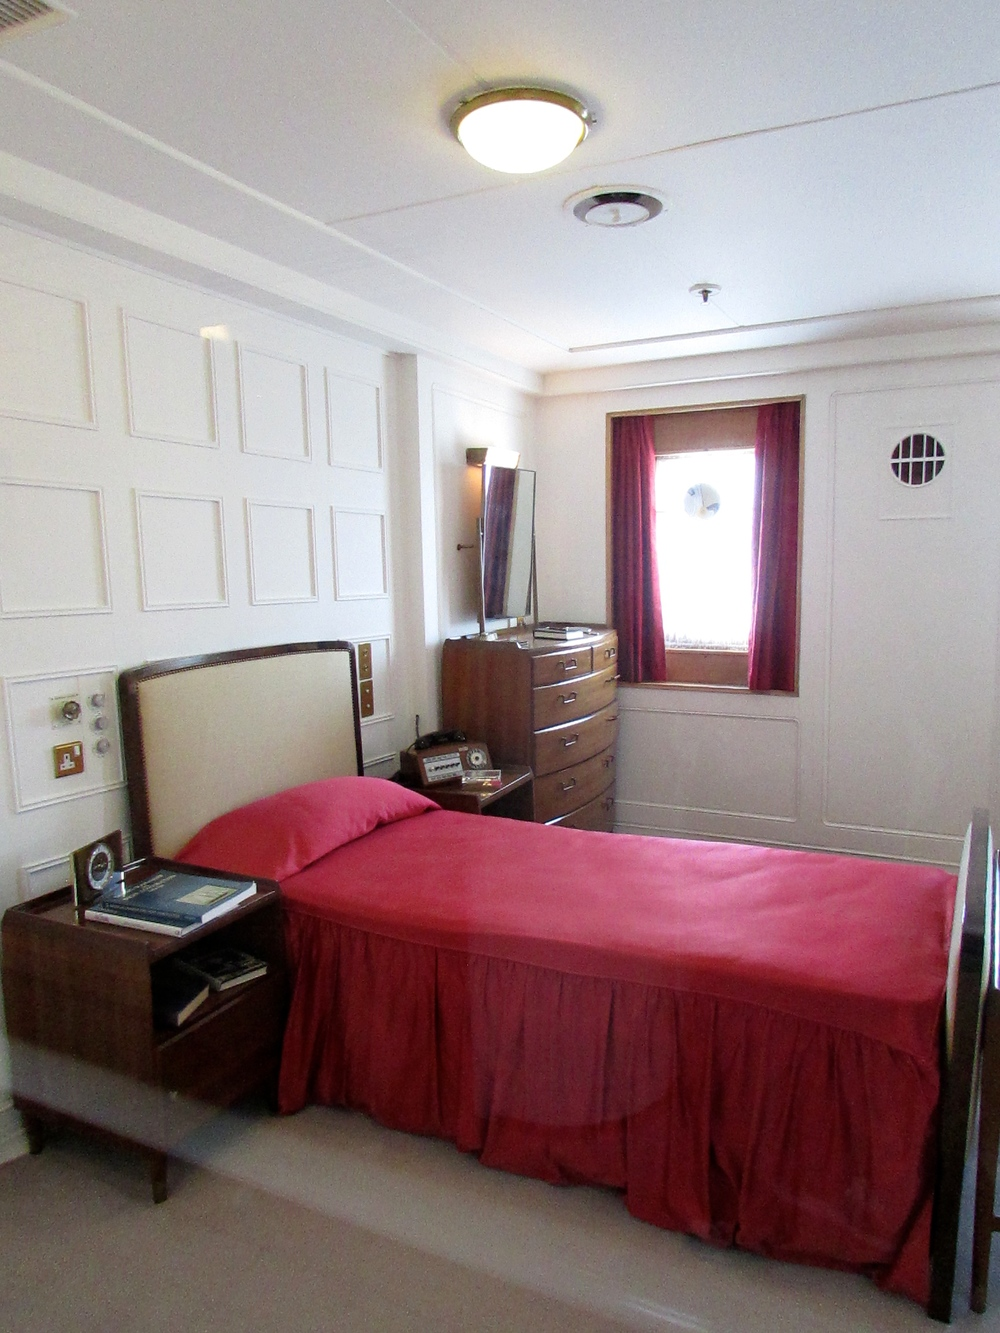 The Duke's private apartment also contains a single bed and simple furnishings. (I have to admit that I find it a bit strange that they have separate apartments. I guess this is a British thing? Or maybe a generational thing?)